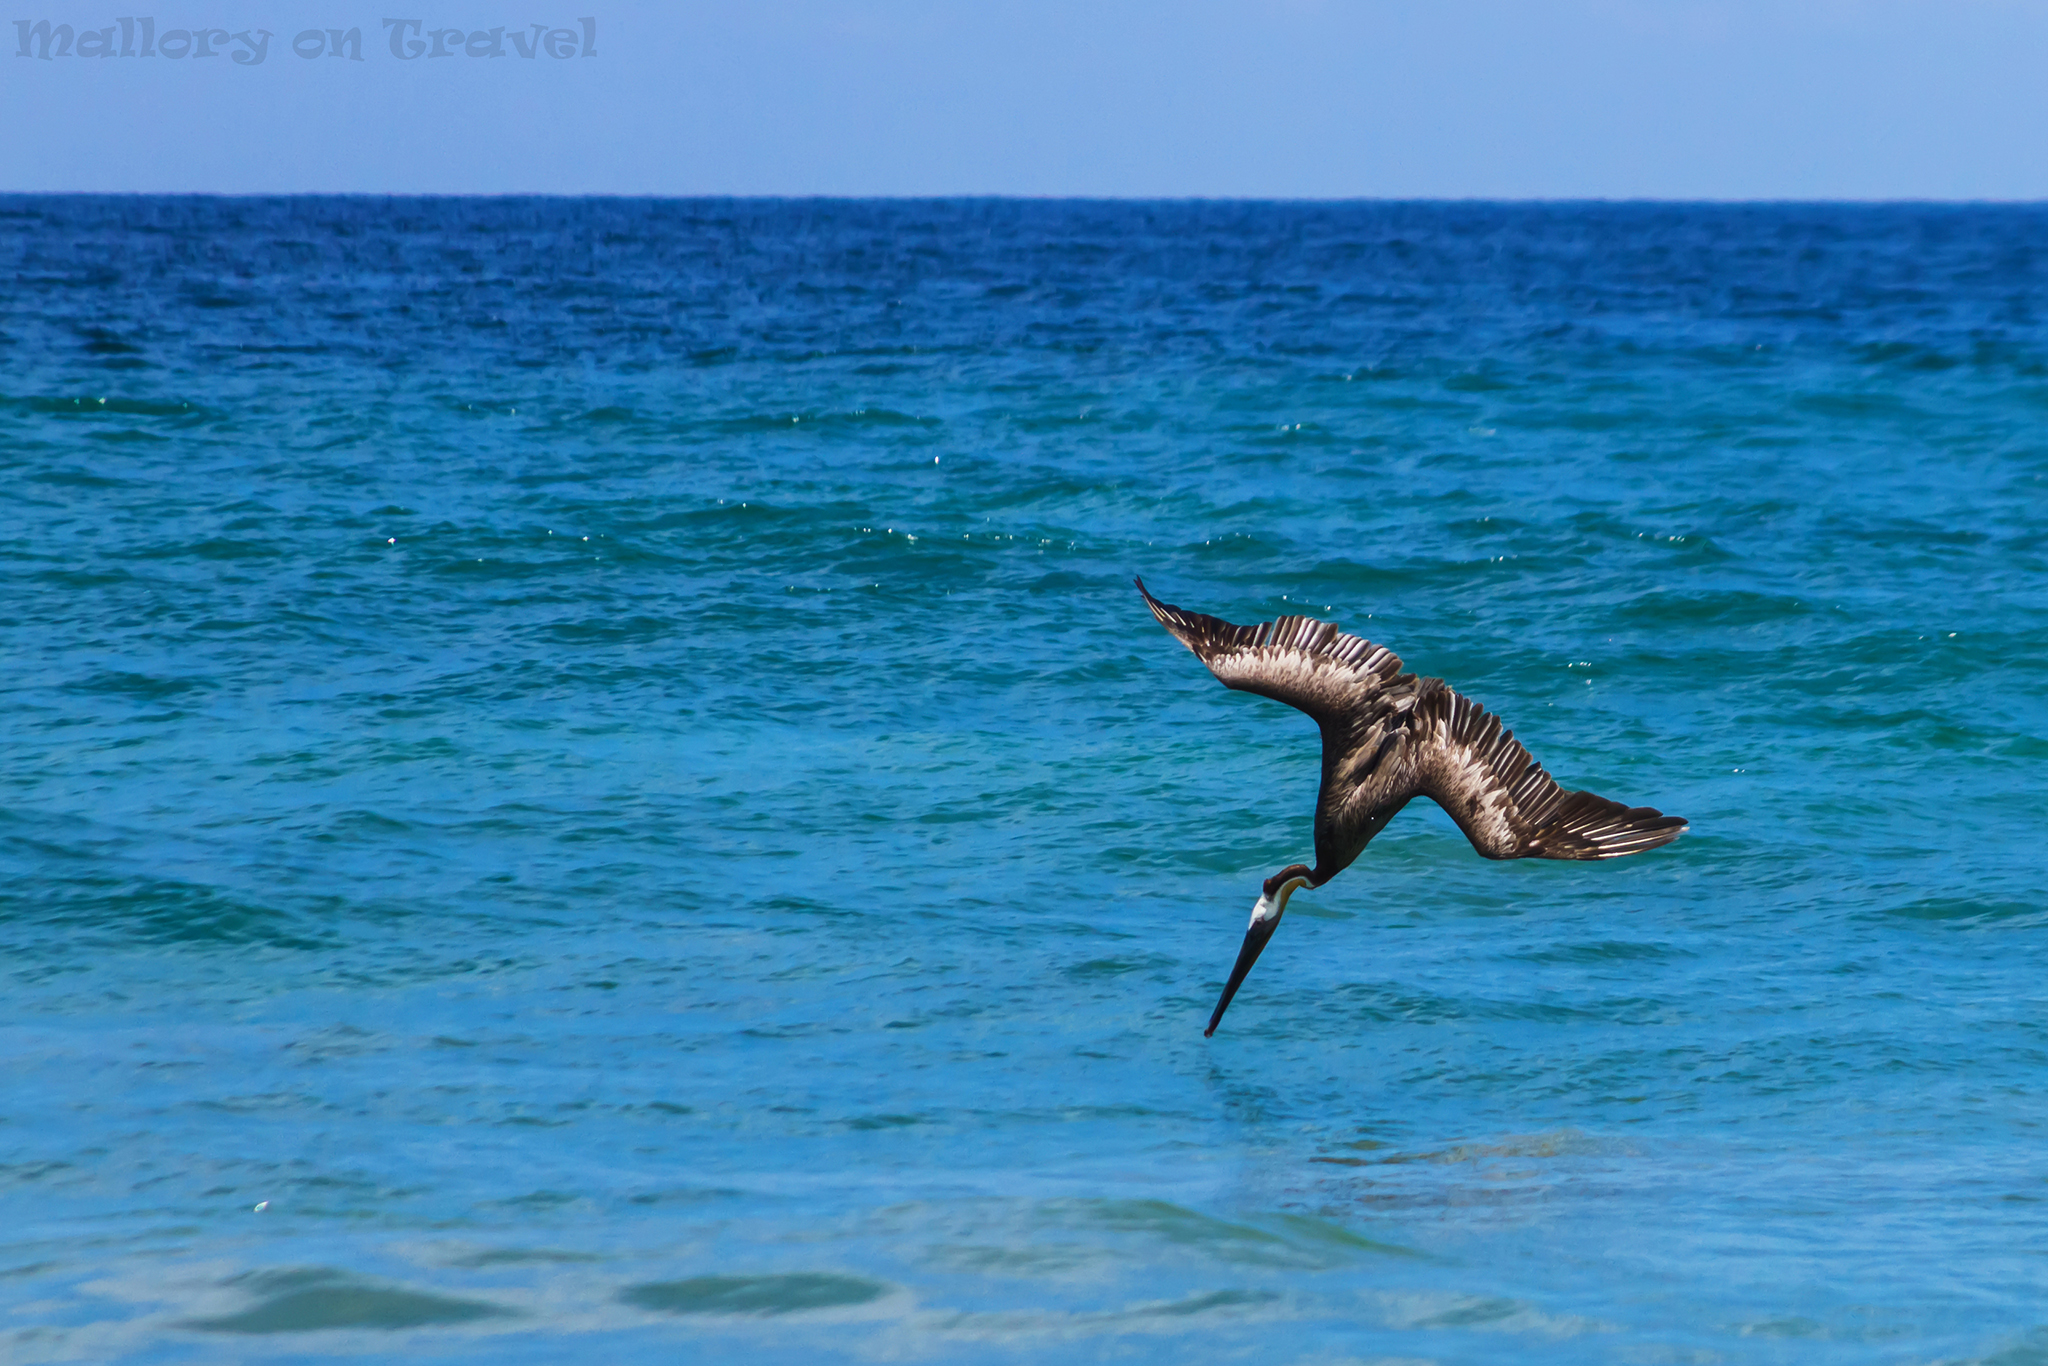 the sea essay brown pelicans dive bombers of the sea photo essay mallory on brown pelicans diving and